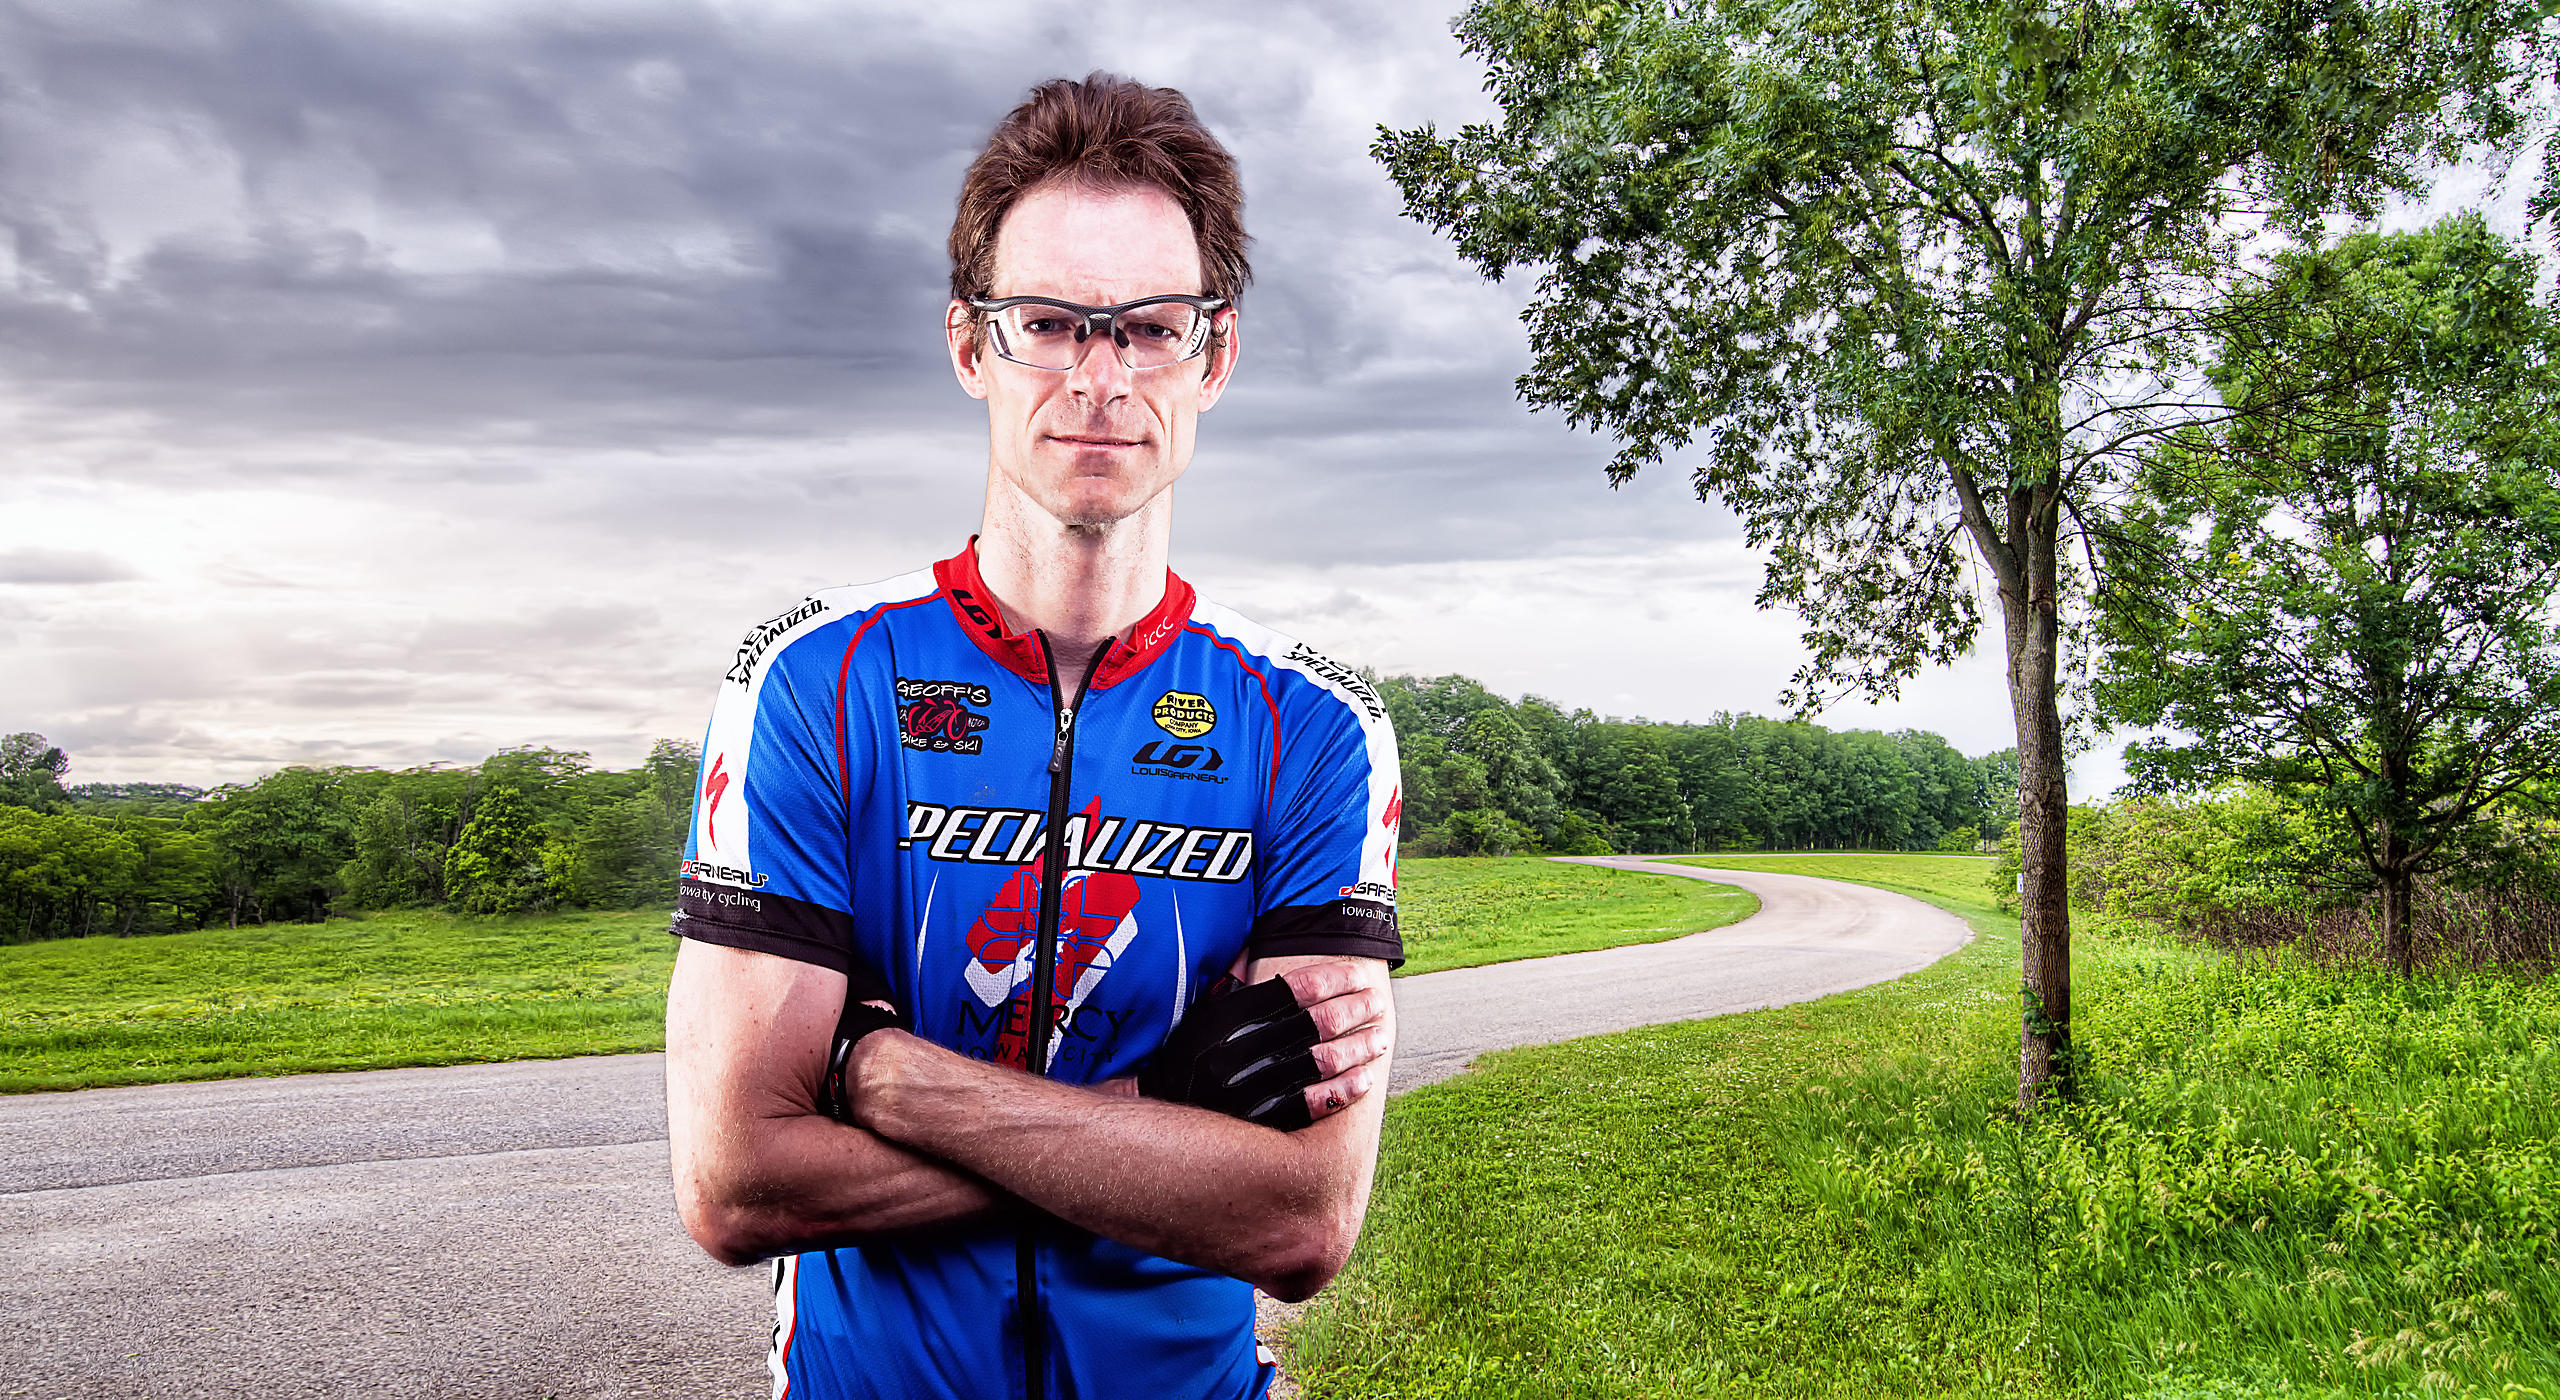 Iowa City Cycling Club Portrait Series photos